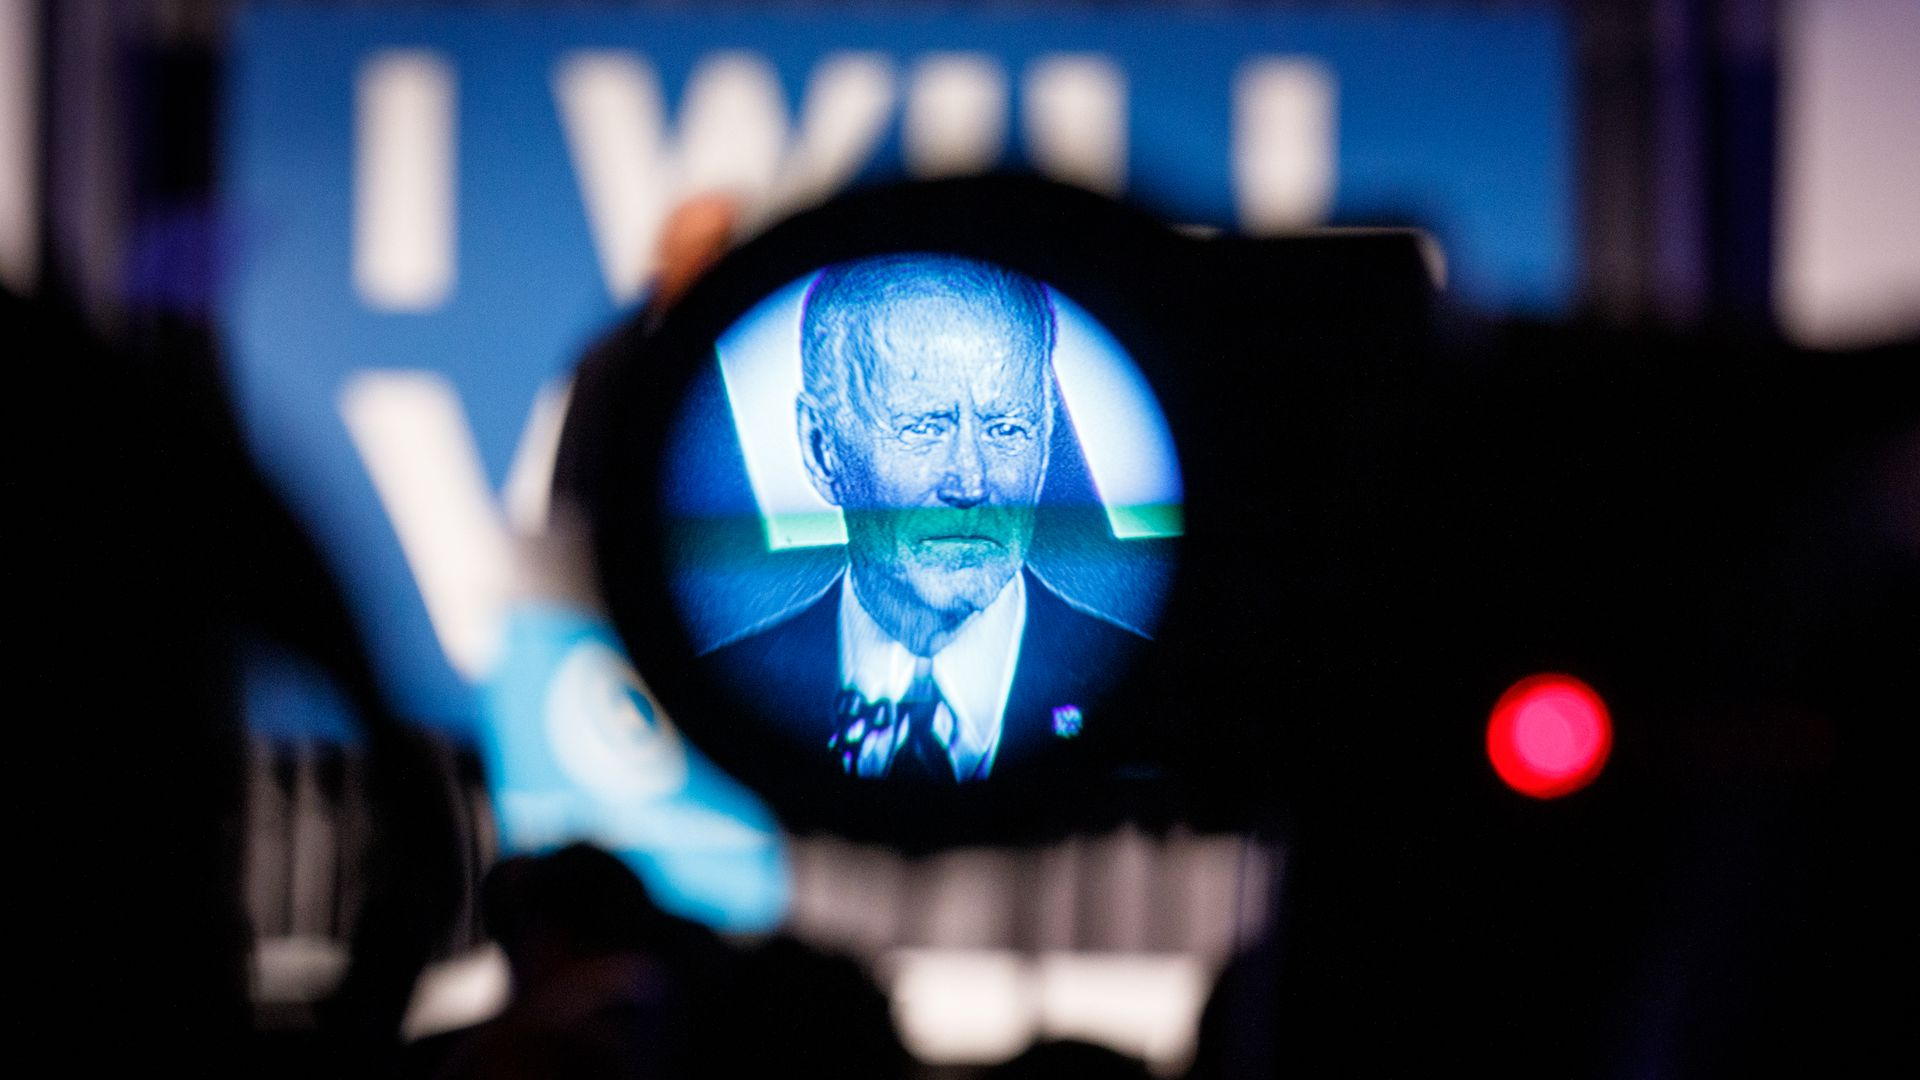 In this image, Biden is seen in a blue filter on a TV camera as he's being filmed while speaking on stage.